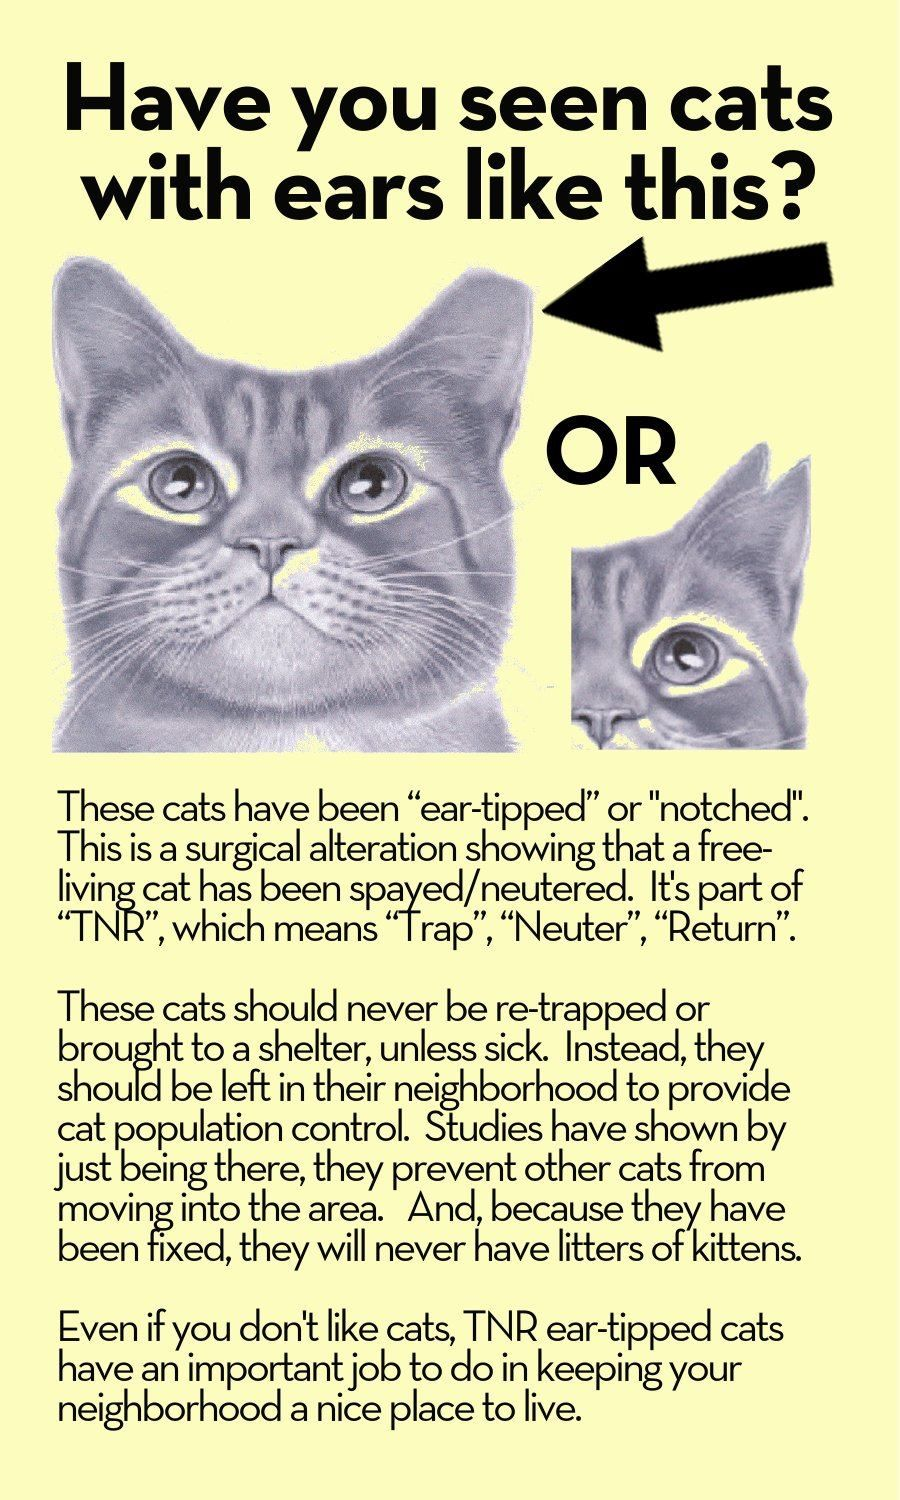 Ear tipped cats help control cat population in neighborhoods